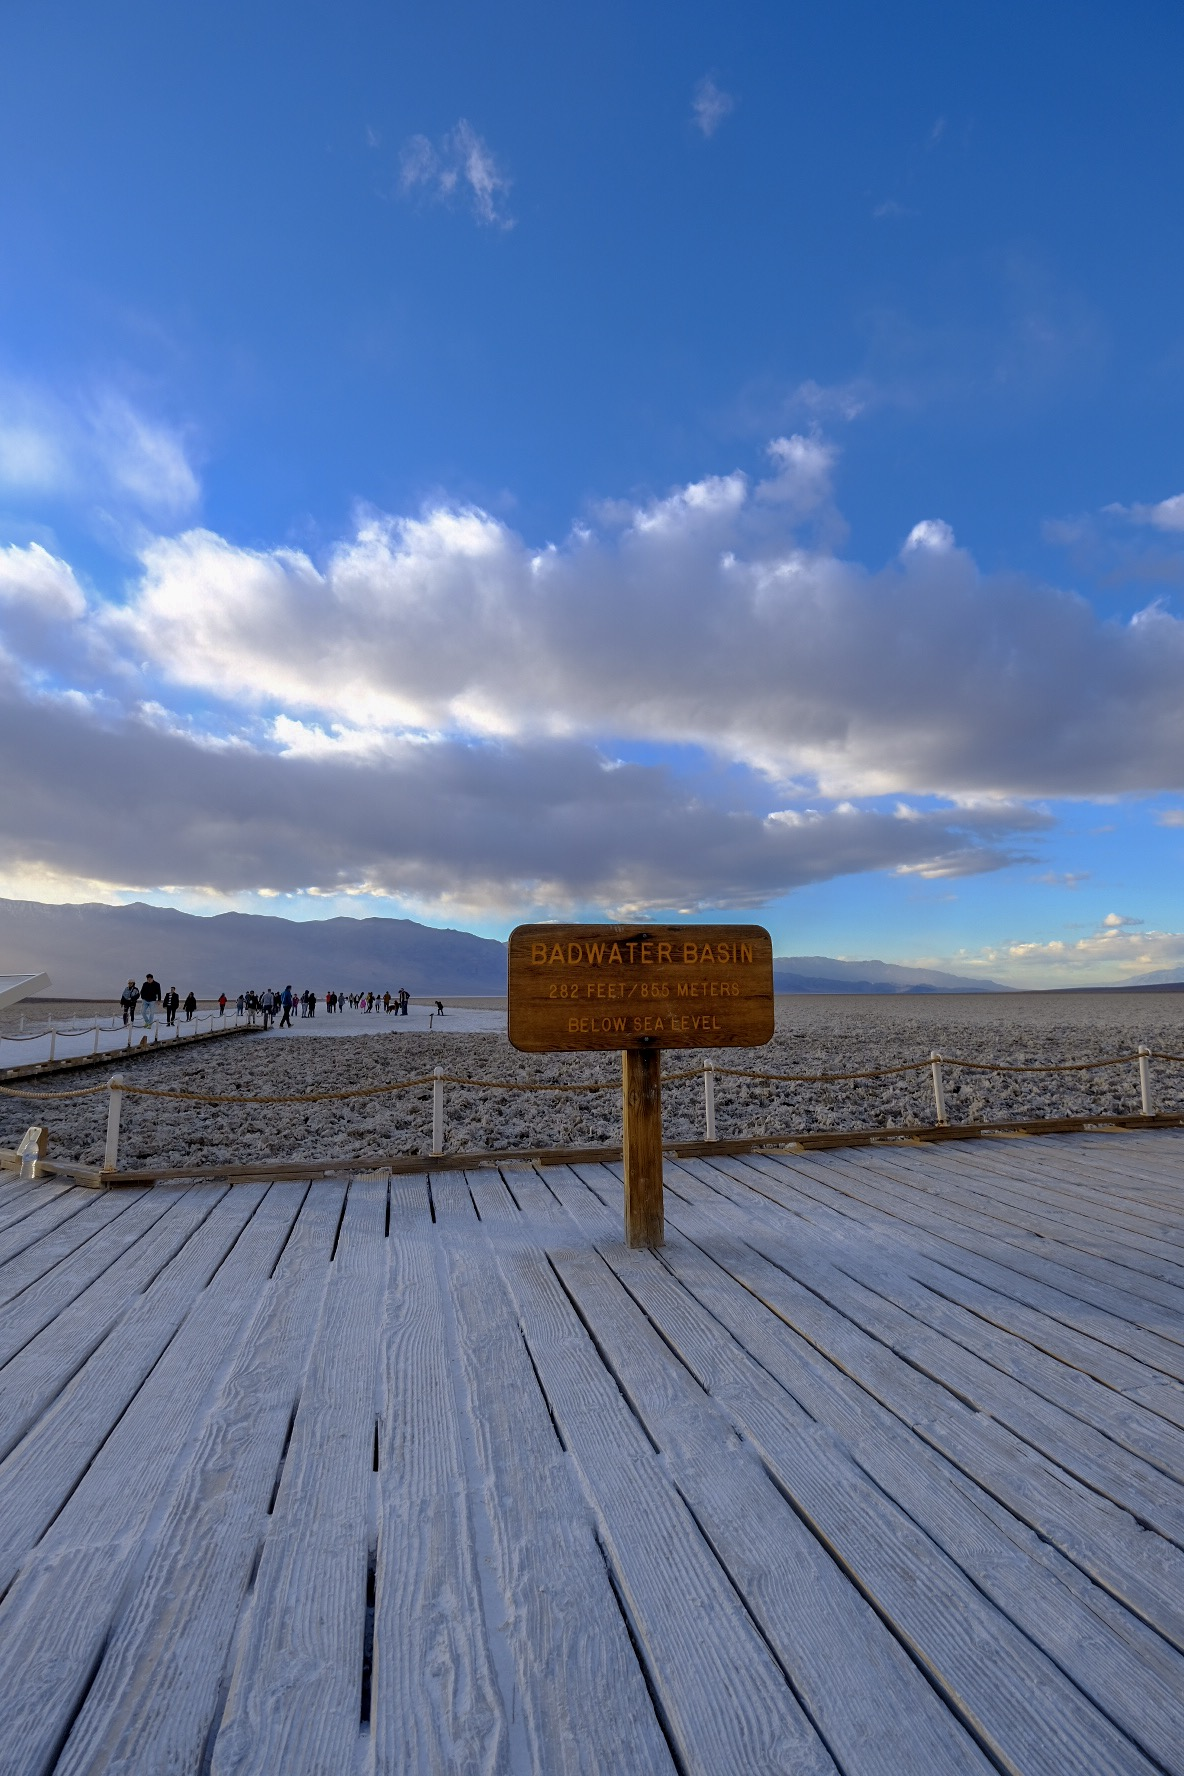 Badwater Basin: The lowest point in North America.